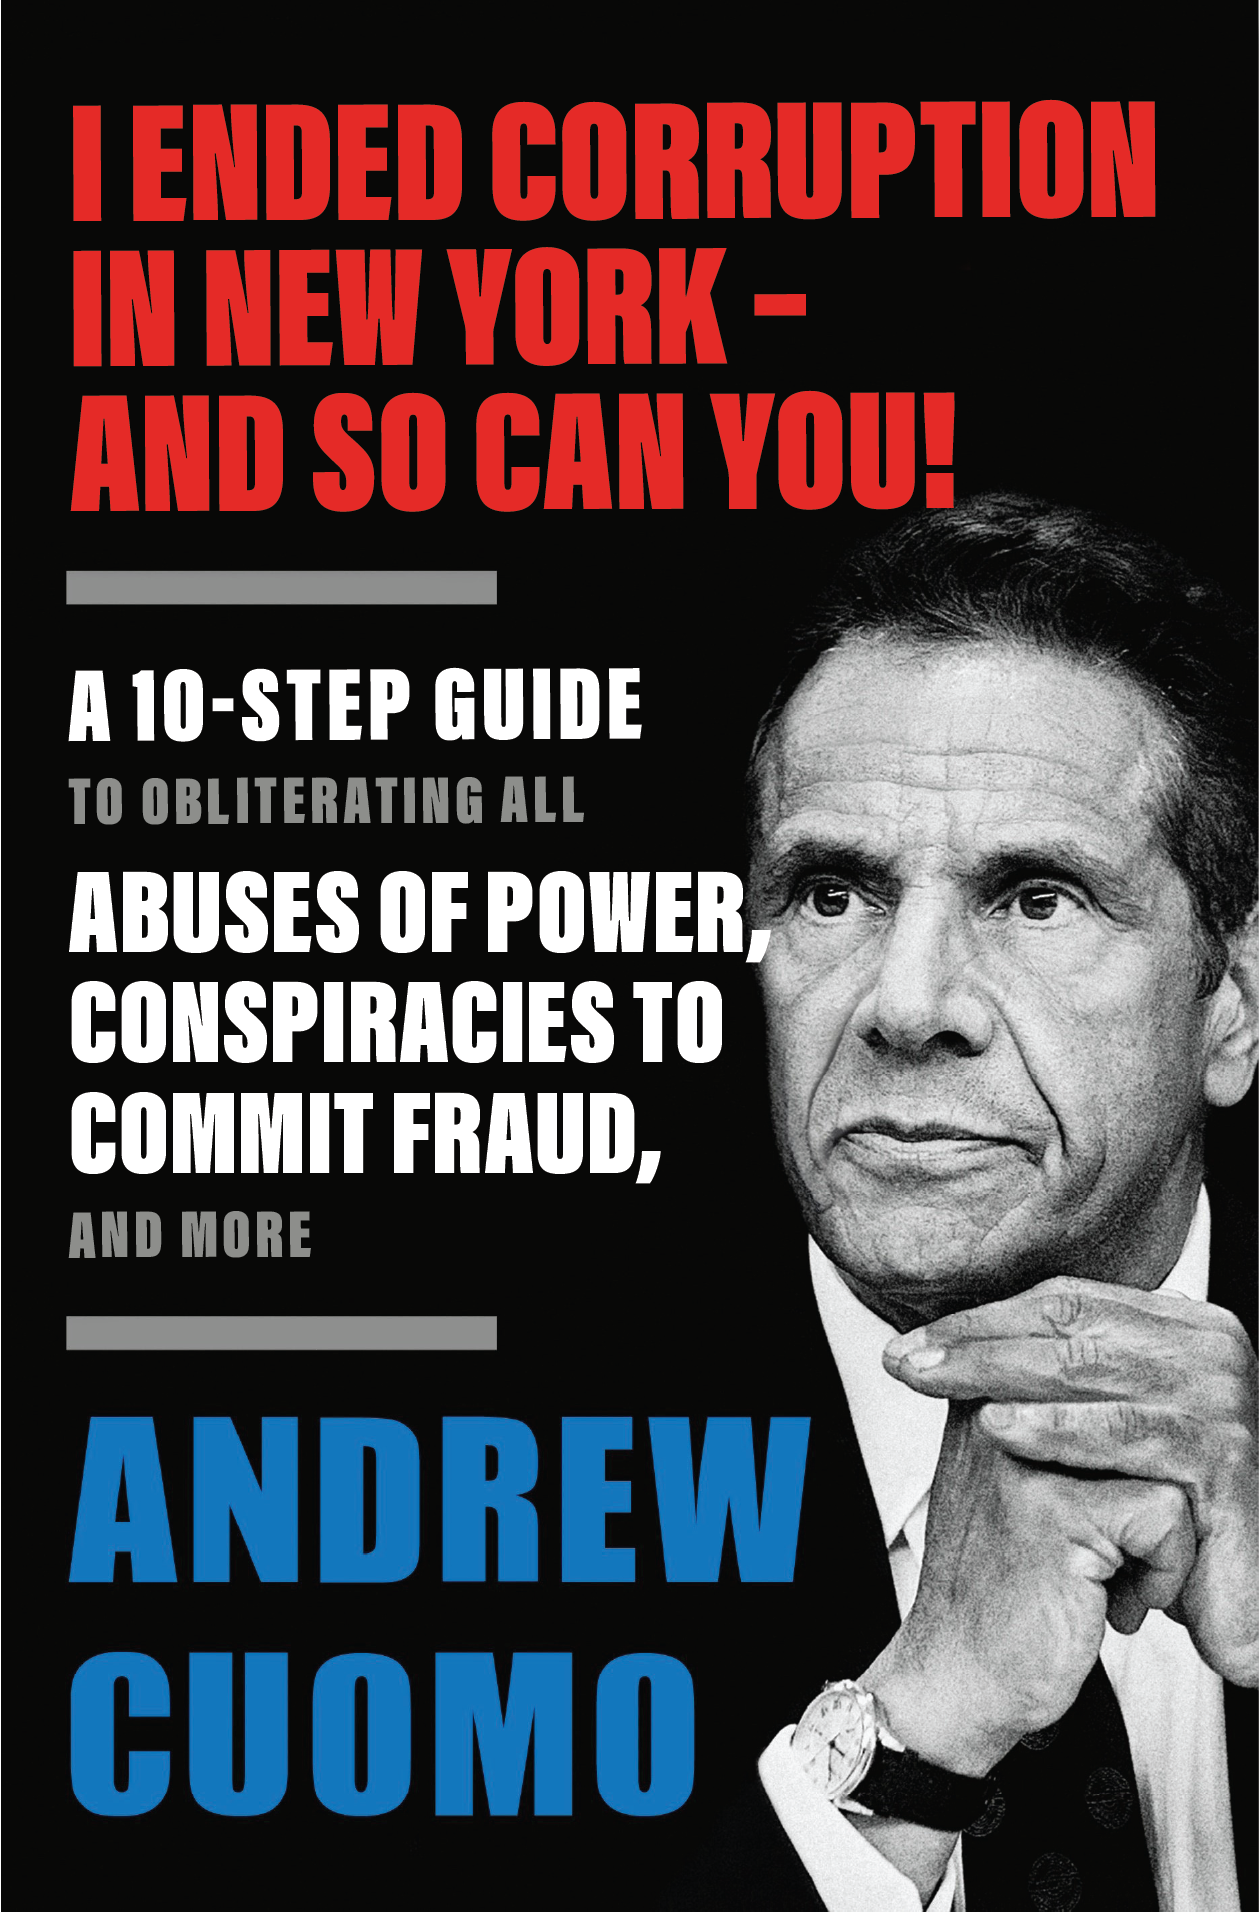 I ended corruption in New York - and so can you!